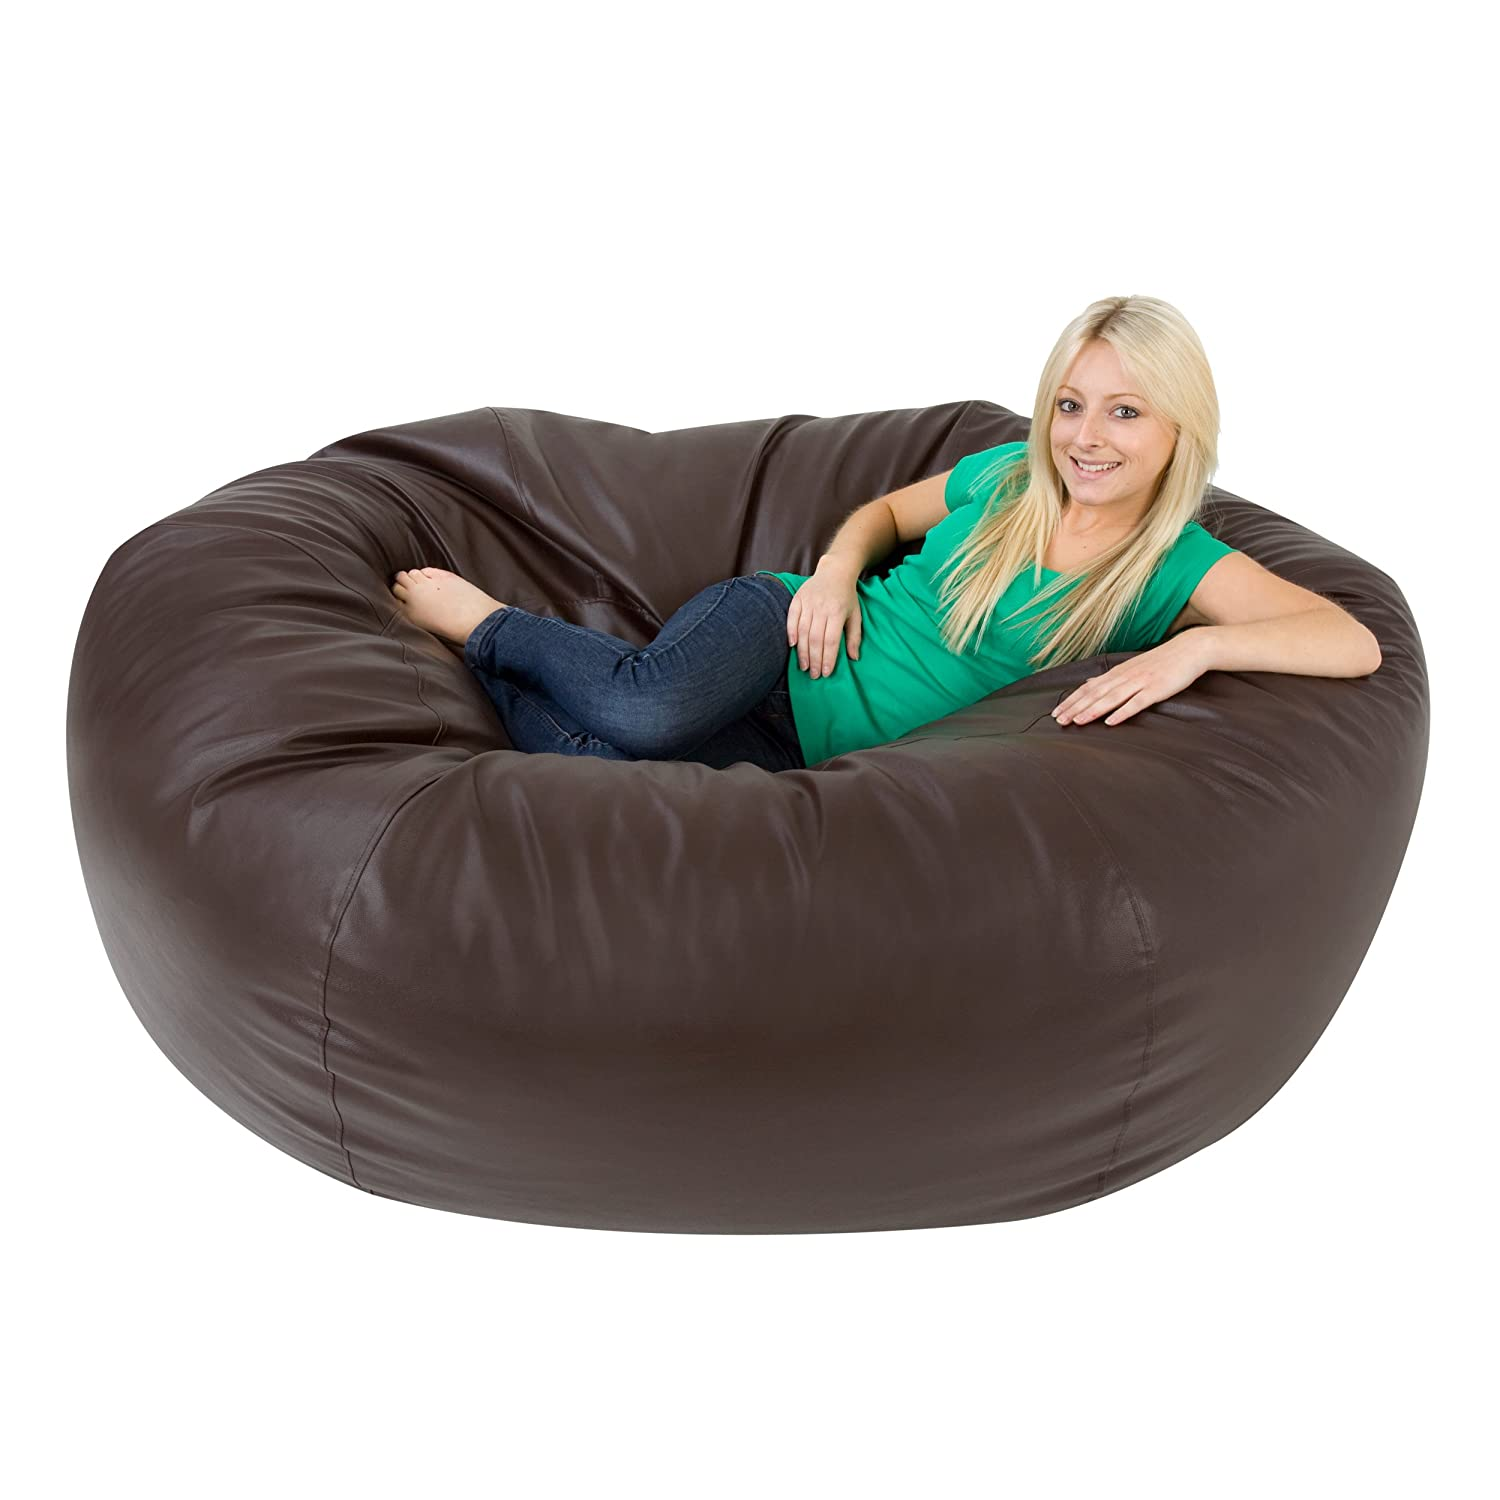 XXXL Bean Bag MONSTER Double Faux Leather BROWN Giant Bean Bags